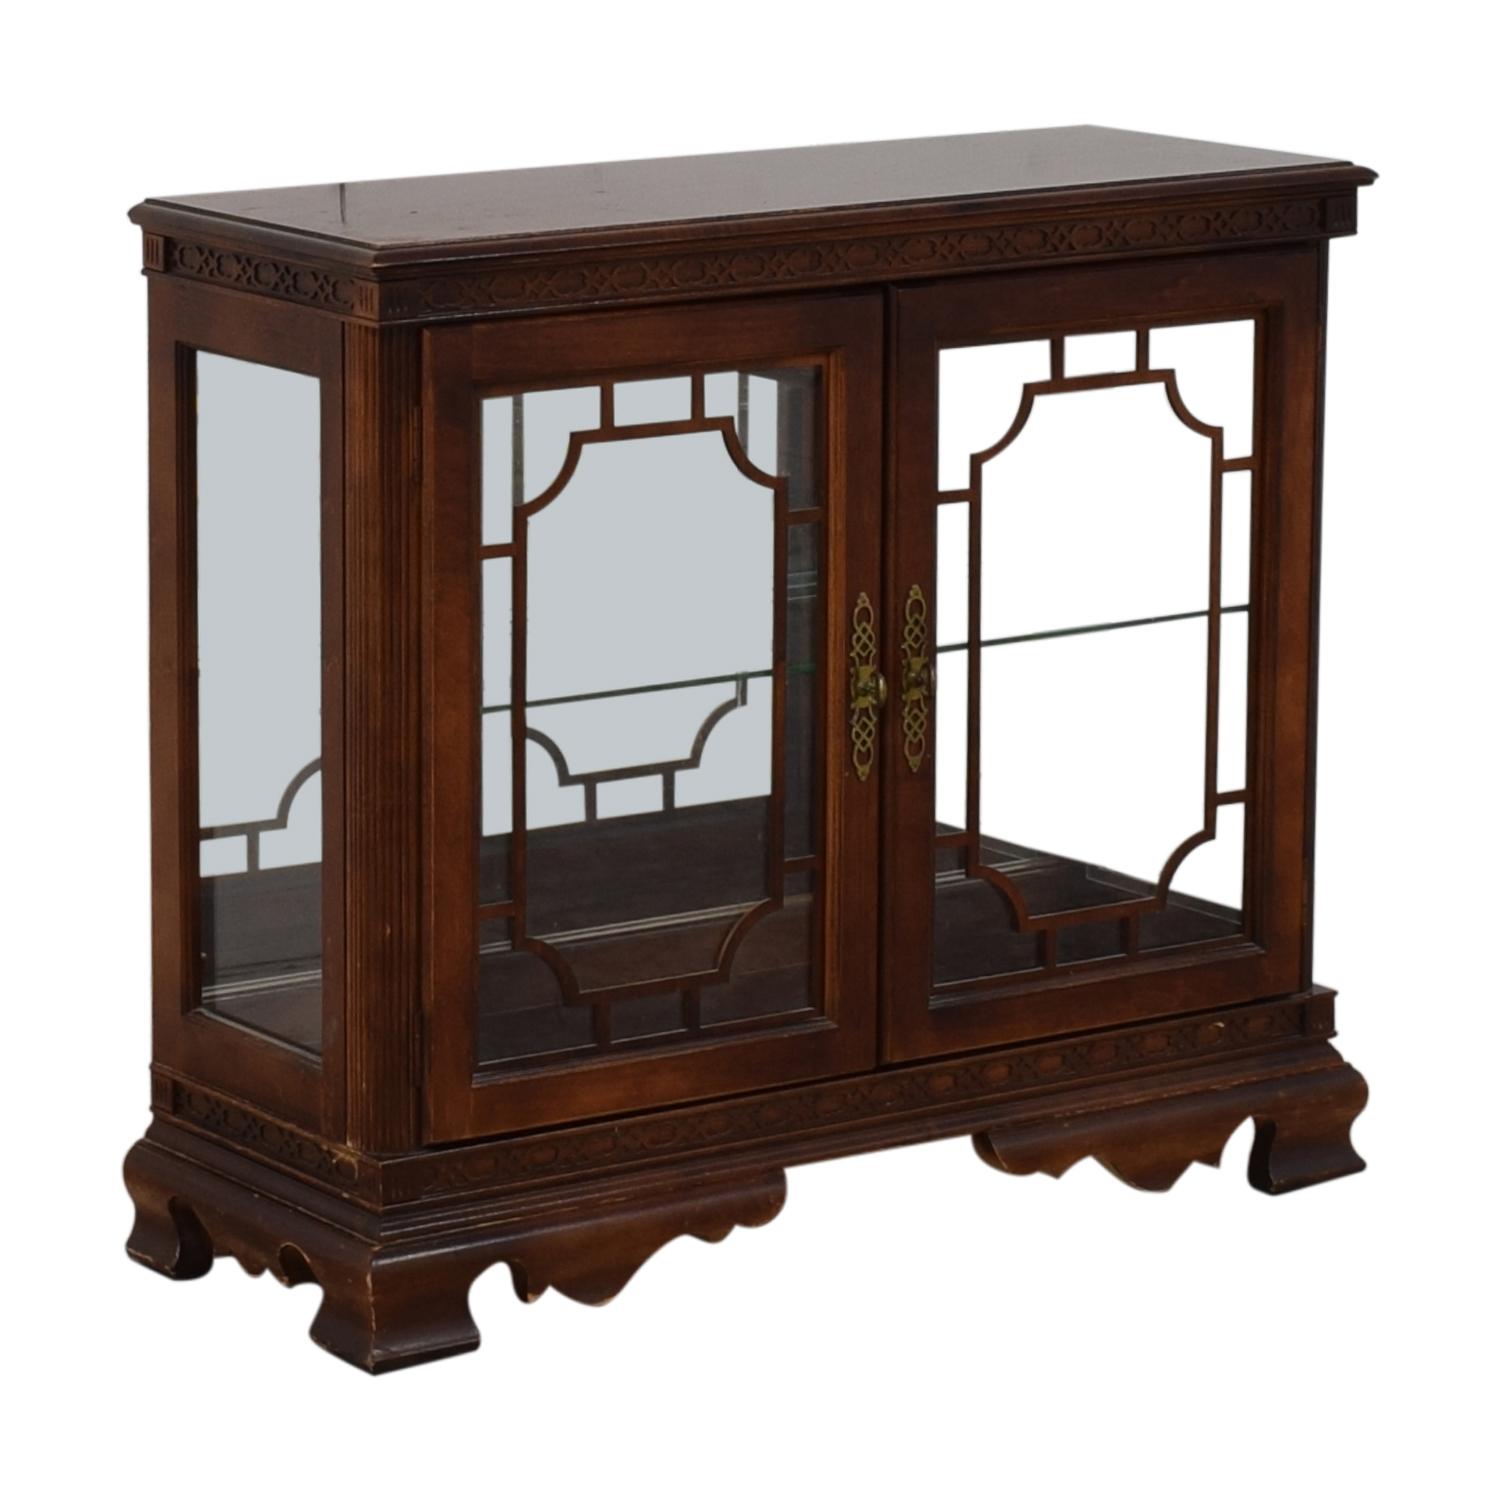 shop Pulaski Furniture Pulaski Antique Cabinet online